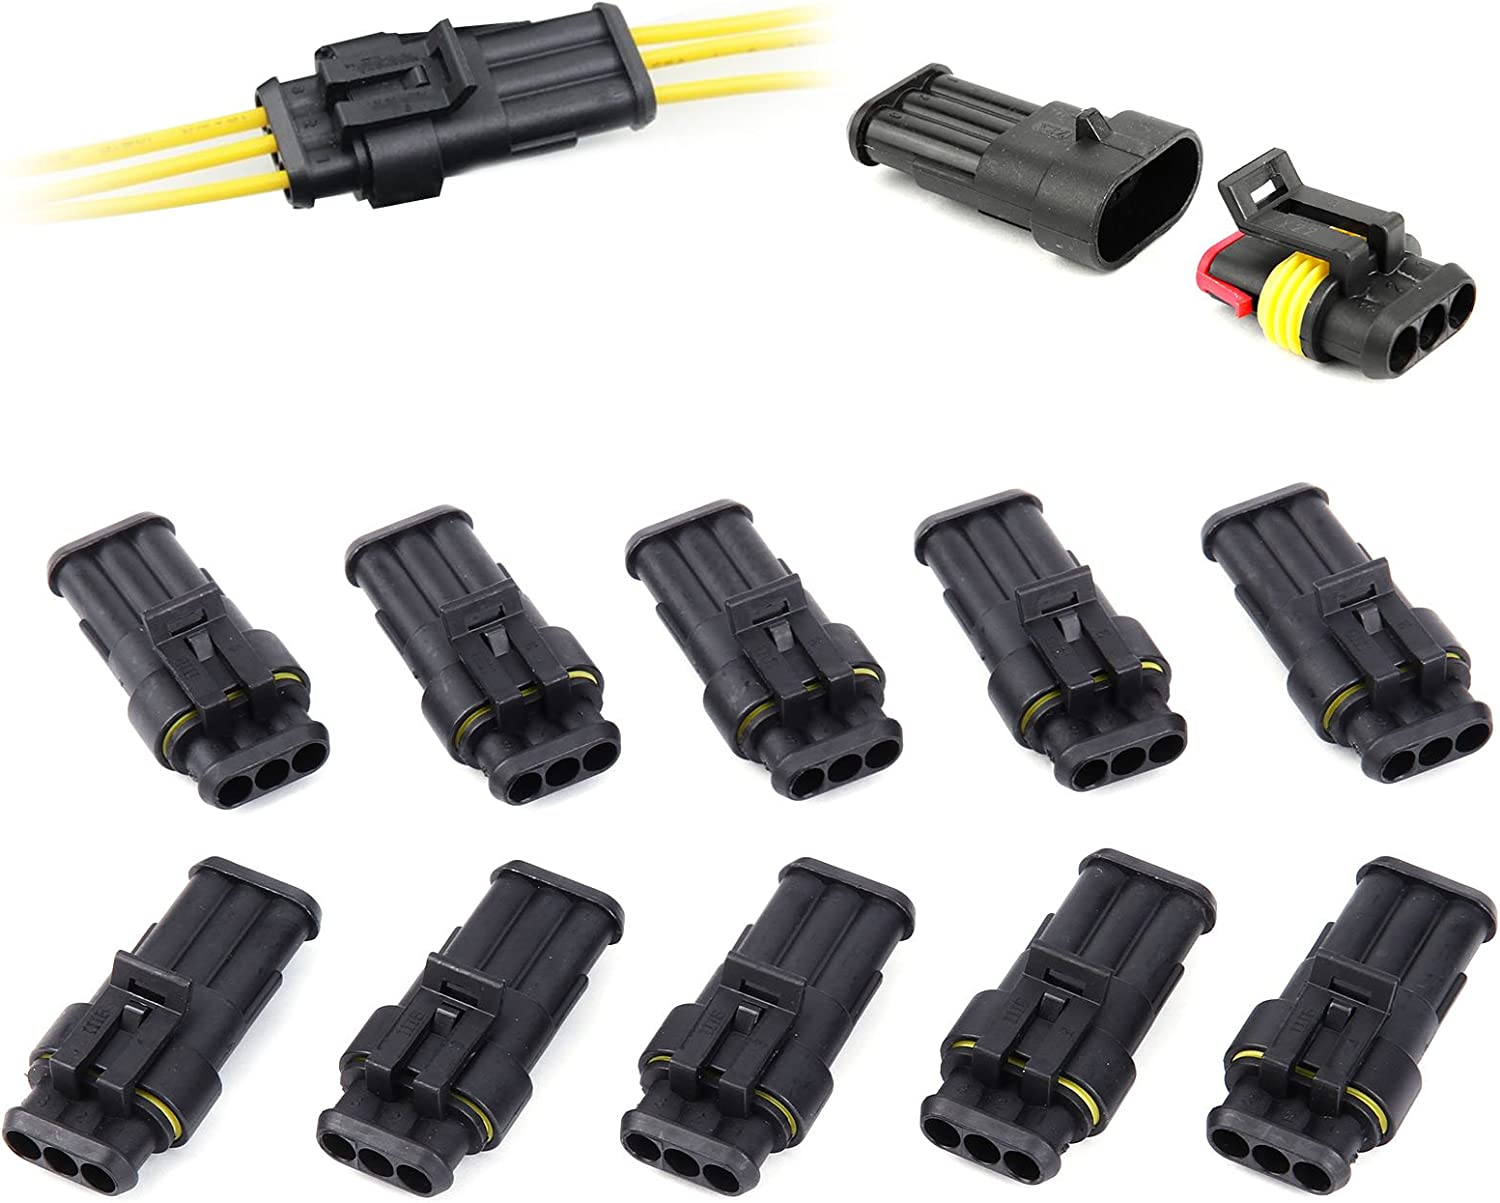 Hamimelon 10-30pcs 2 3 4 Pin Way Car Super Seal Waterproof Electrical Wire Connector Plug